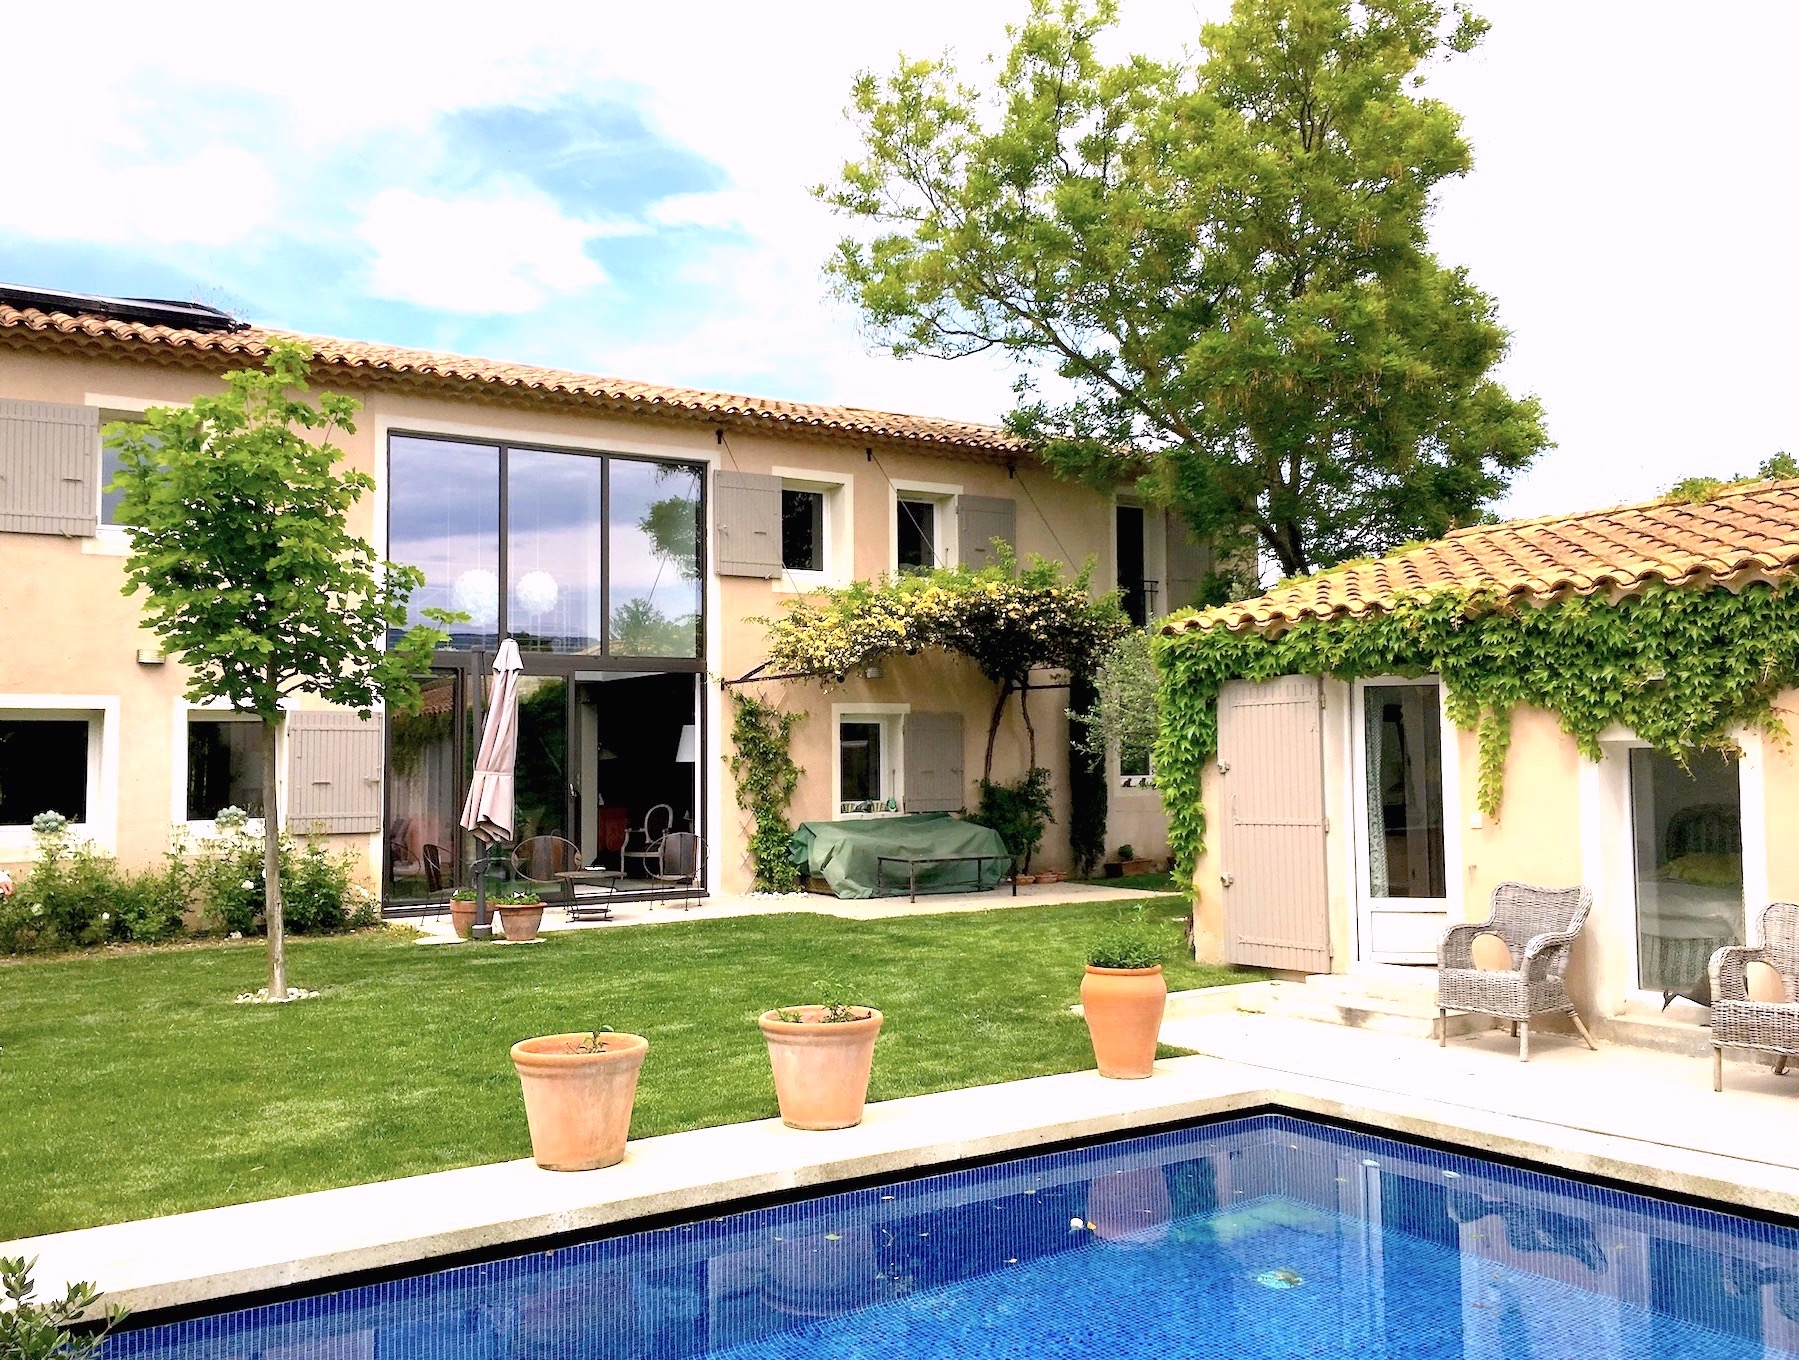 2277 : Saint Rémy de Provence, beautiful home, with 5 bedrooms,pool and garage, at walking distance from town centre.